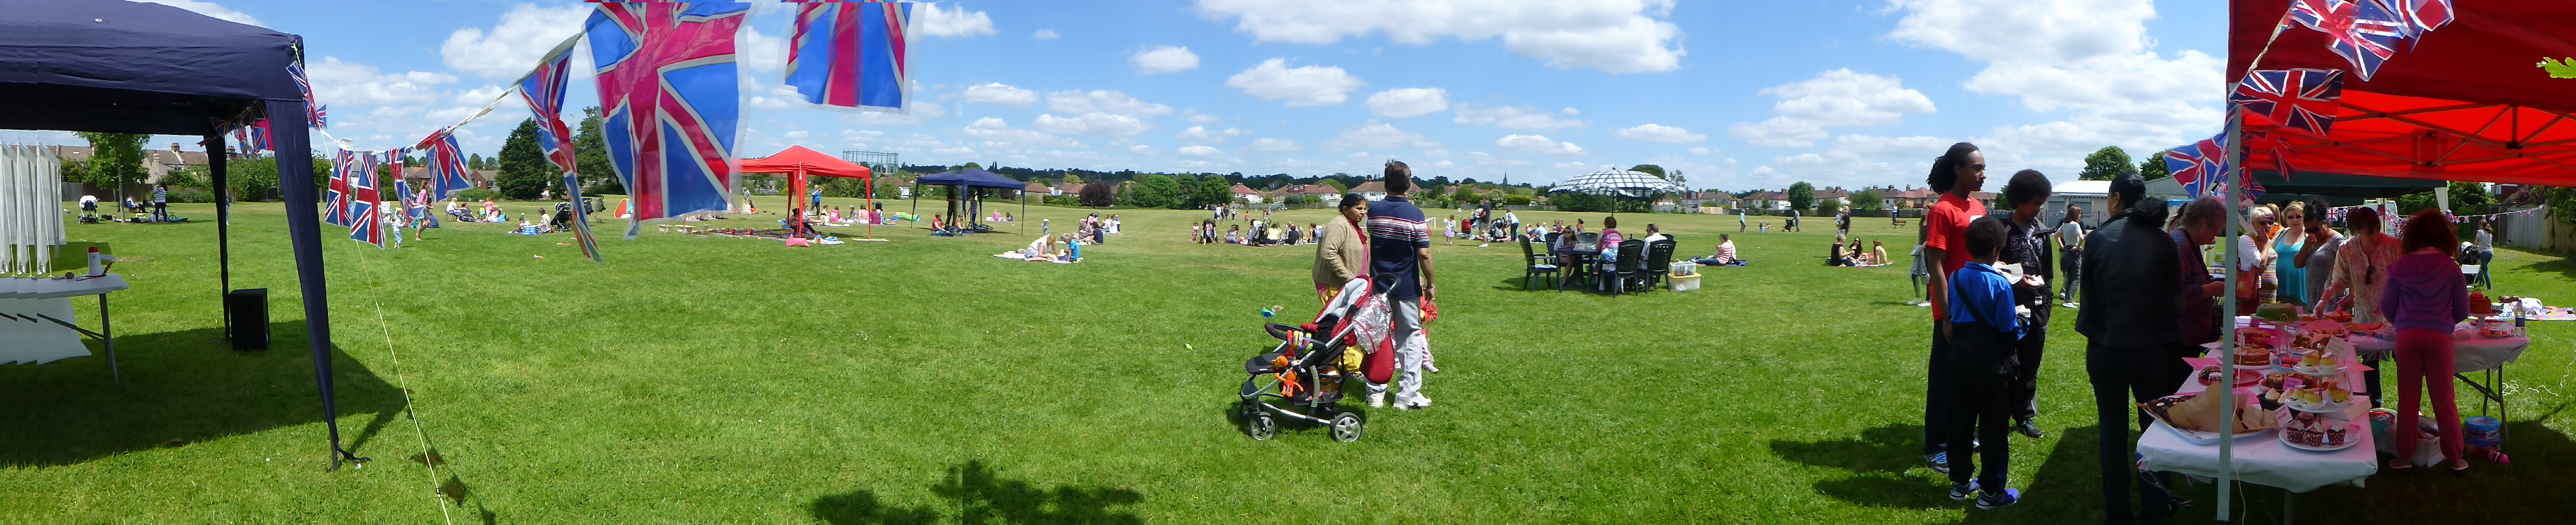 15jun07 0015 big lunch pano.JPG